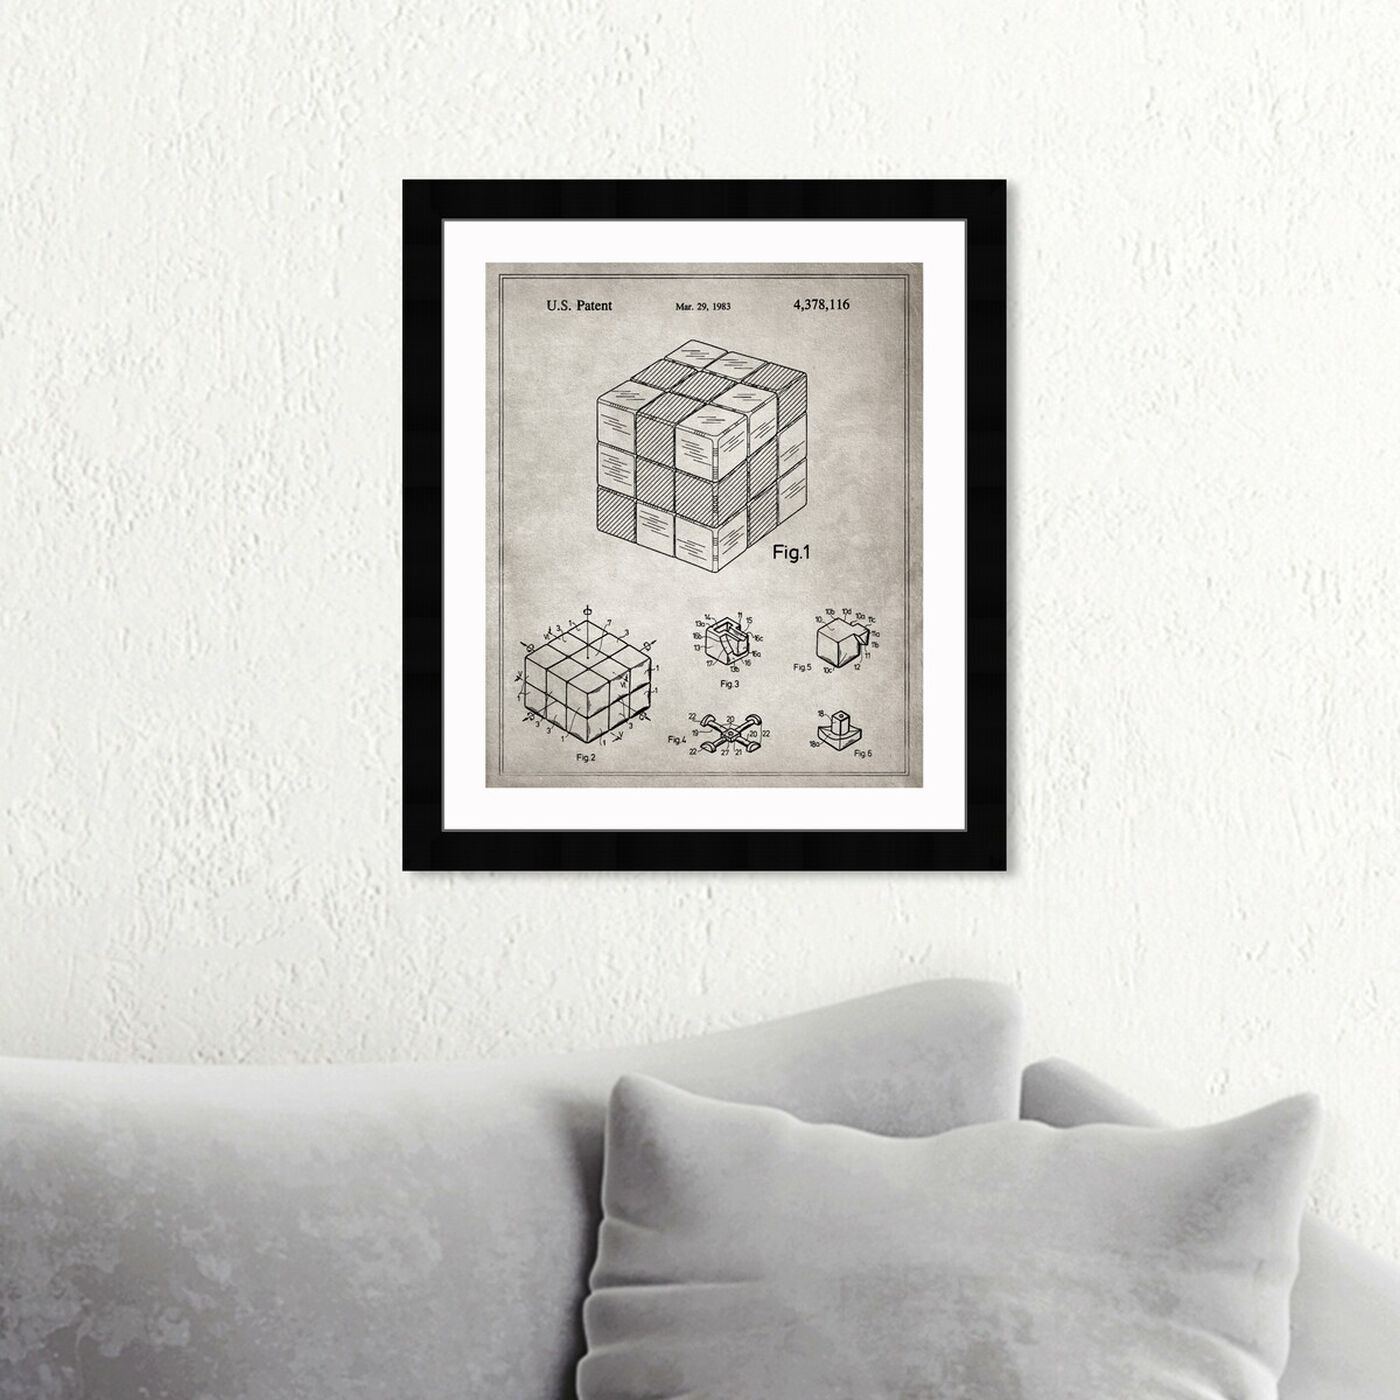 Hanging view of Spatial Logical Toy, 1983- Gray featuring entertainment and hobbies and toys art.